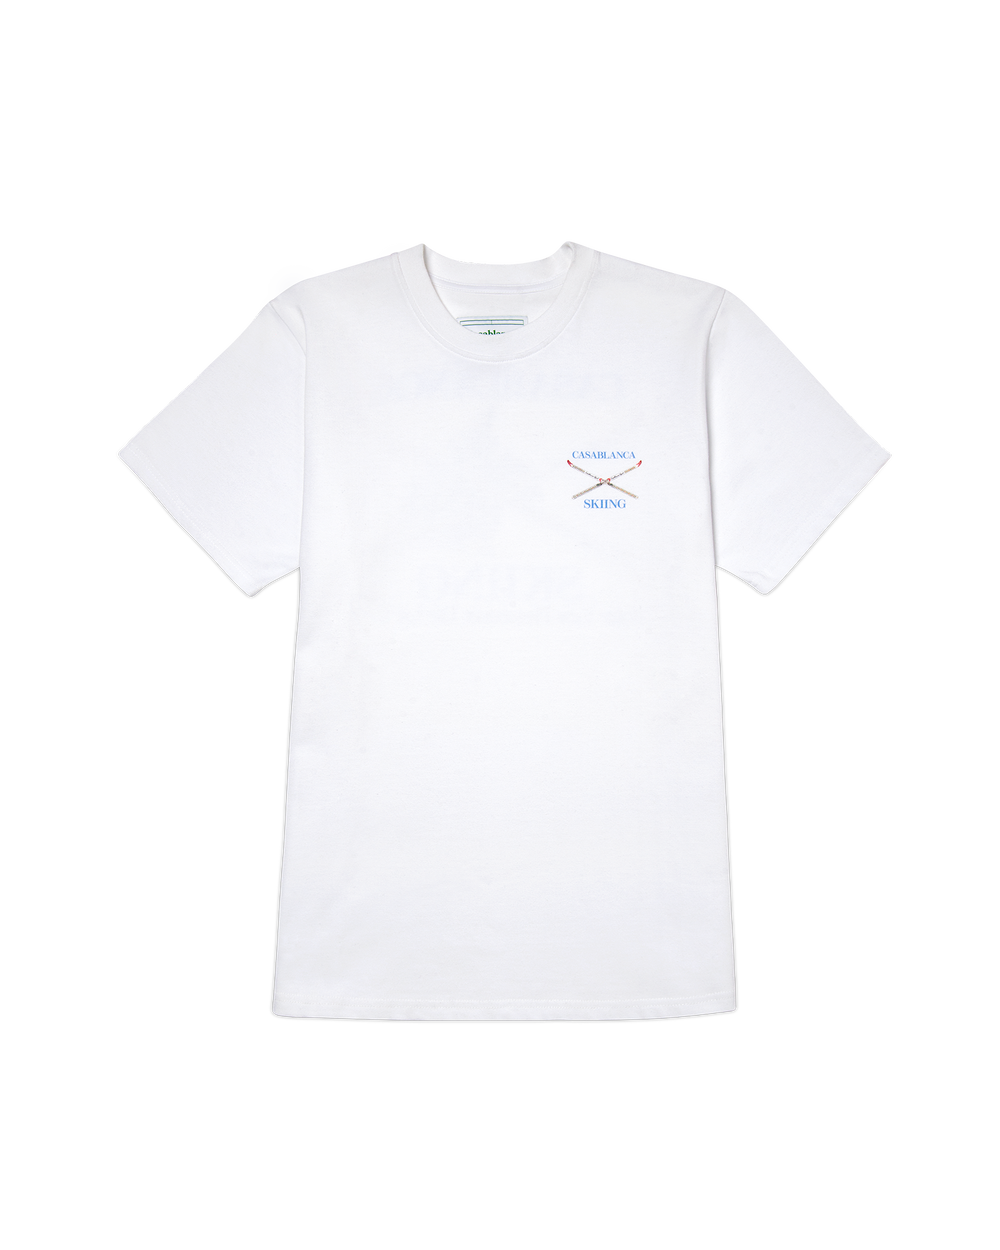 Casablanca Skiing T-shirt